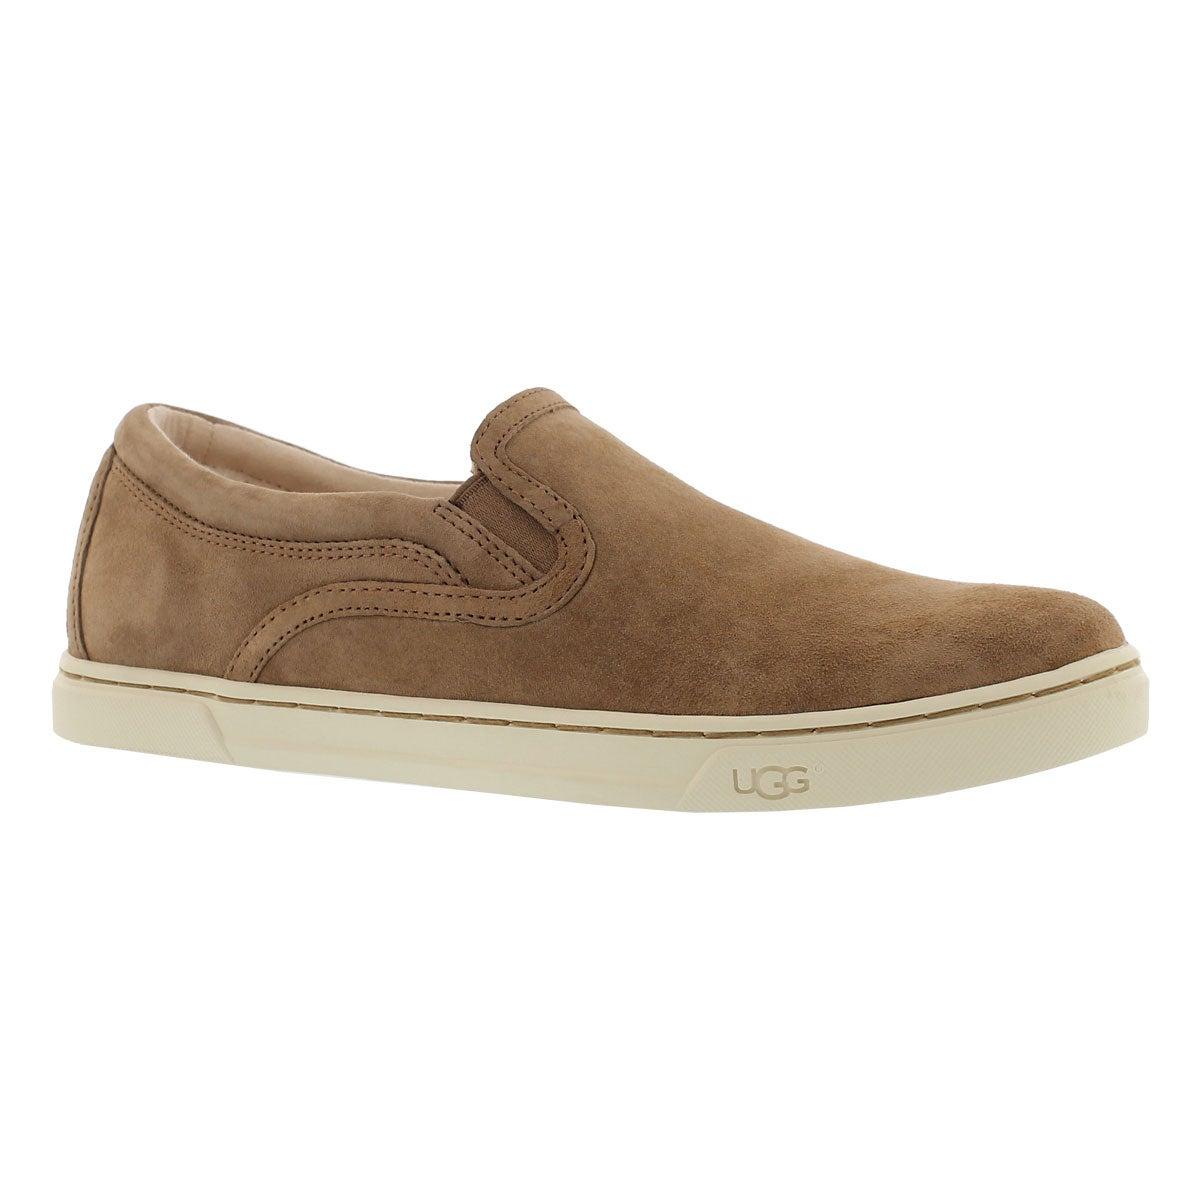 Lds Fierce chestnut slip on loafer